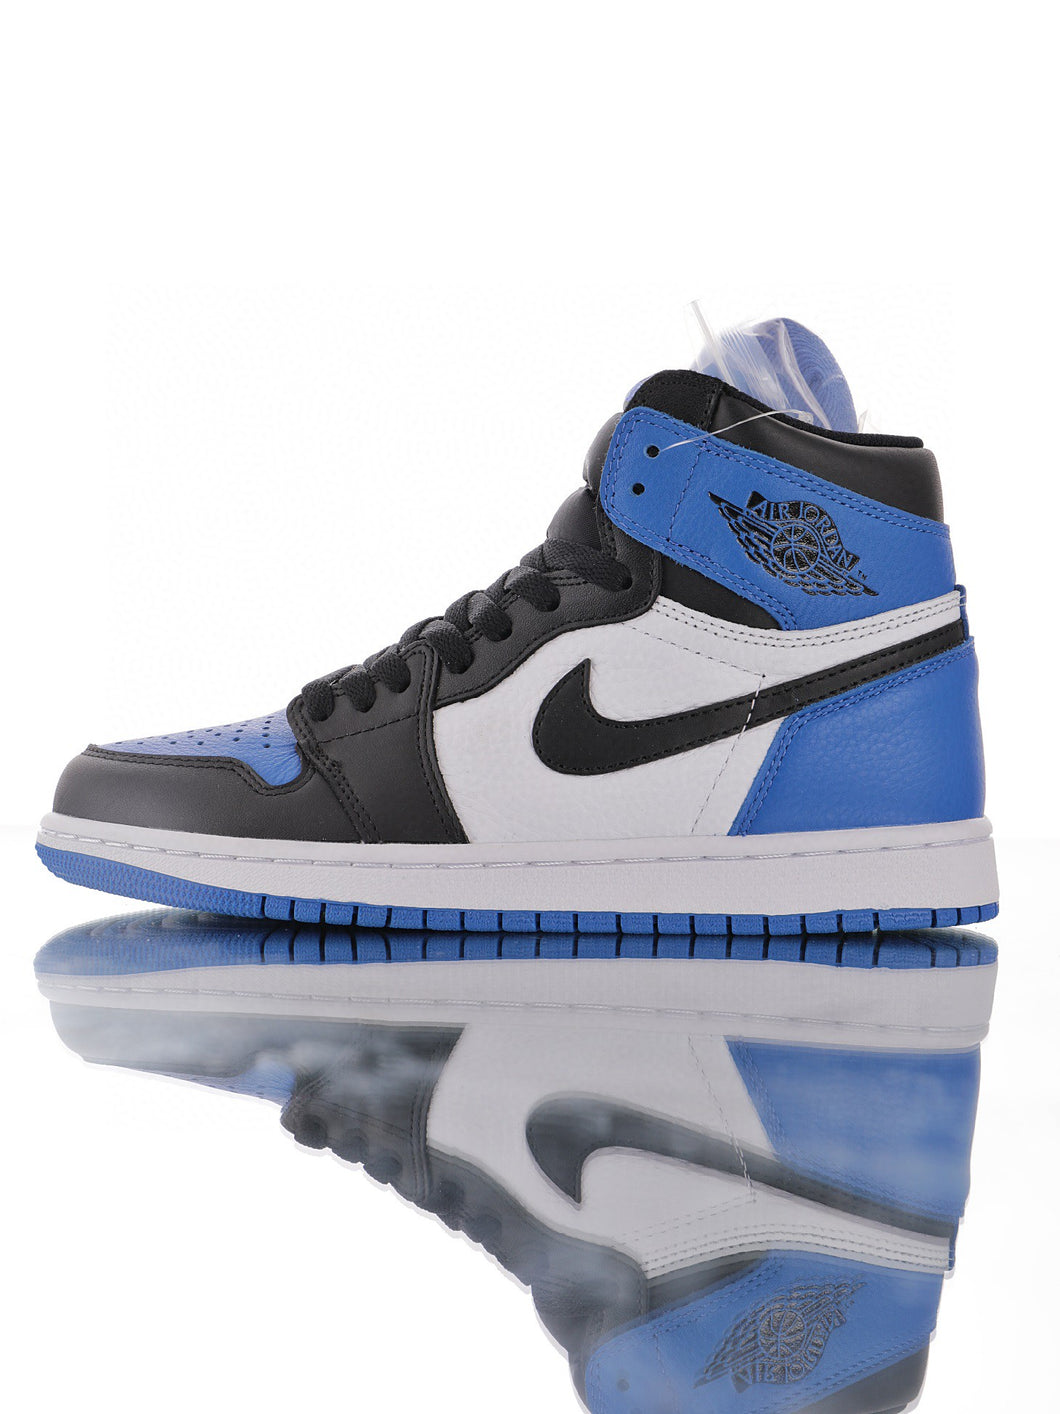 Nike Air Jordan 1 Retro High Blue Chil – Brands and More IL